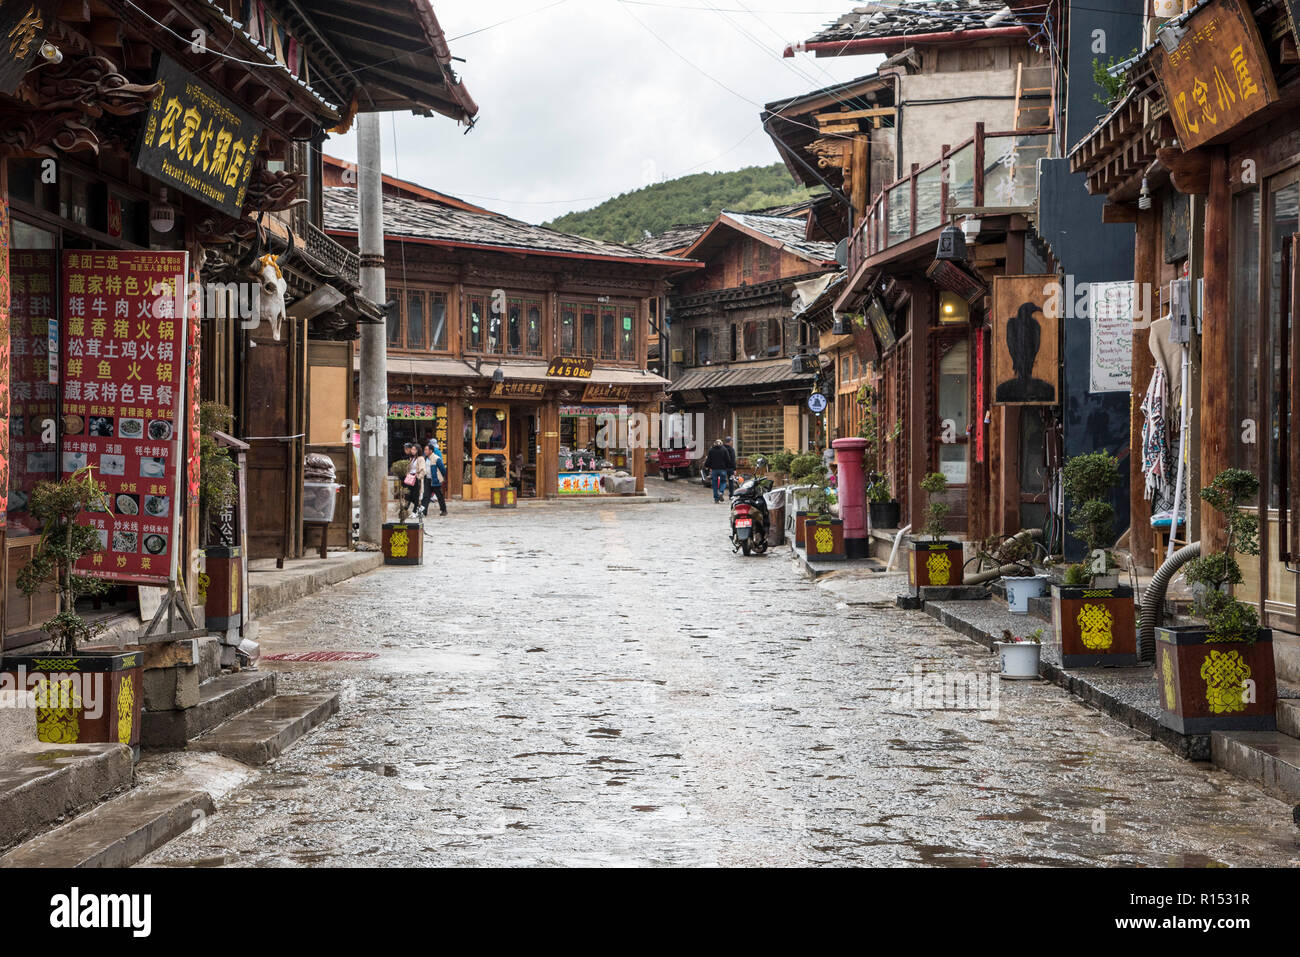 An old cobbles street in the ancient Chinese town called Zongdian later renamed Shangri -La. China - Stock Image